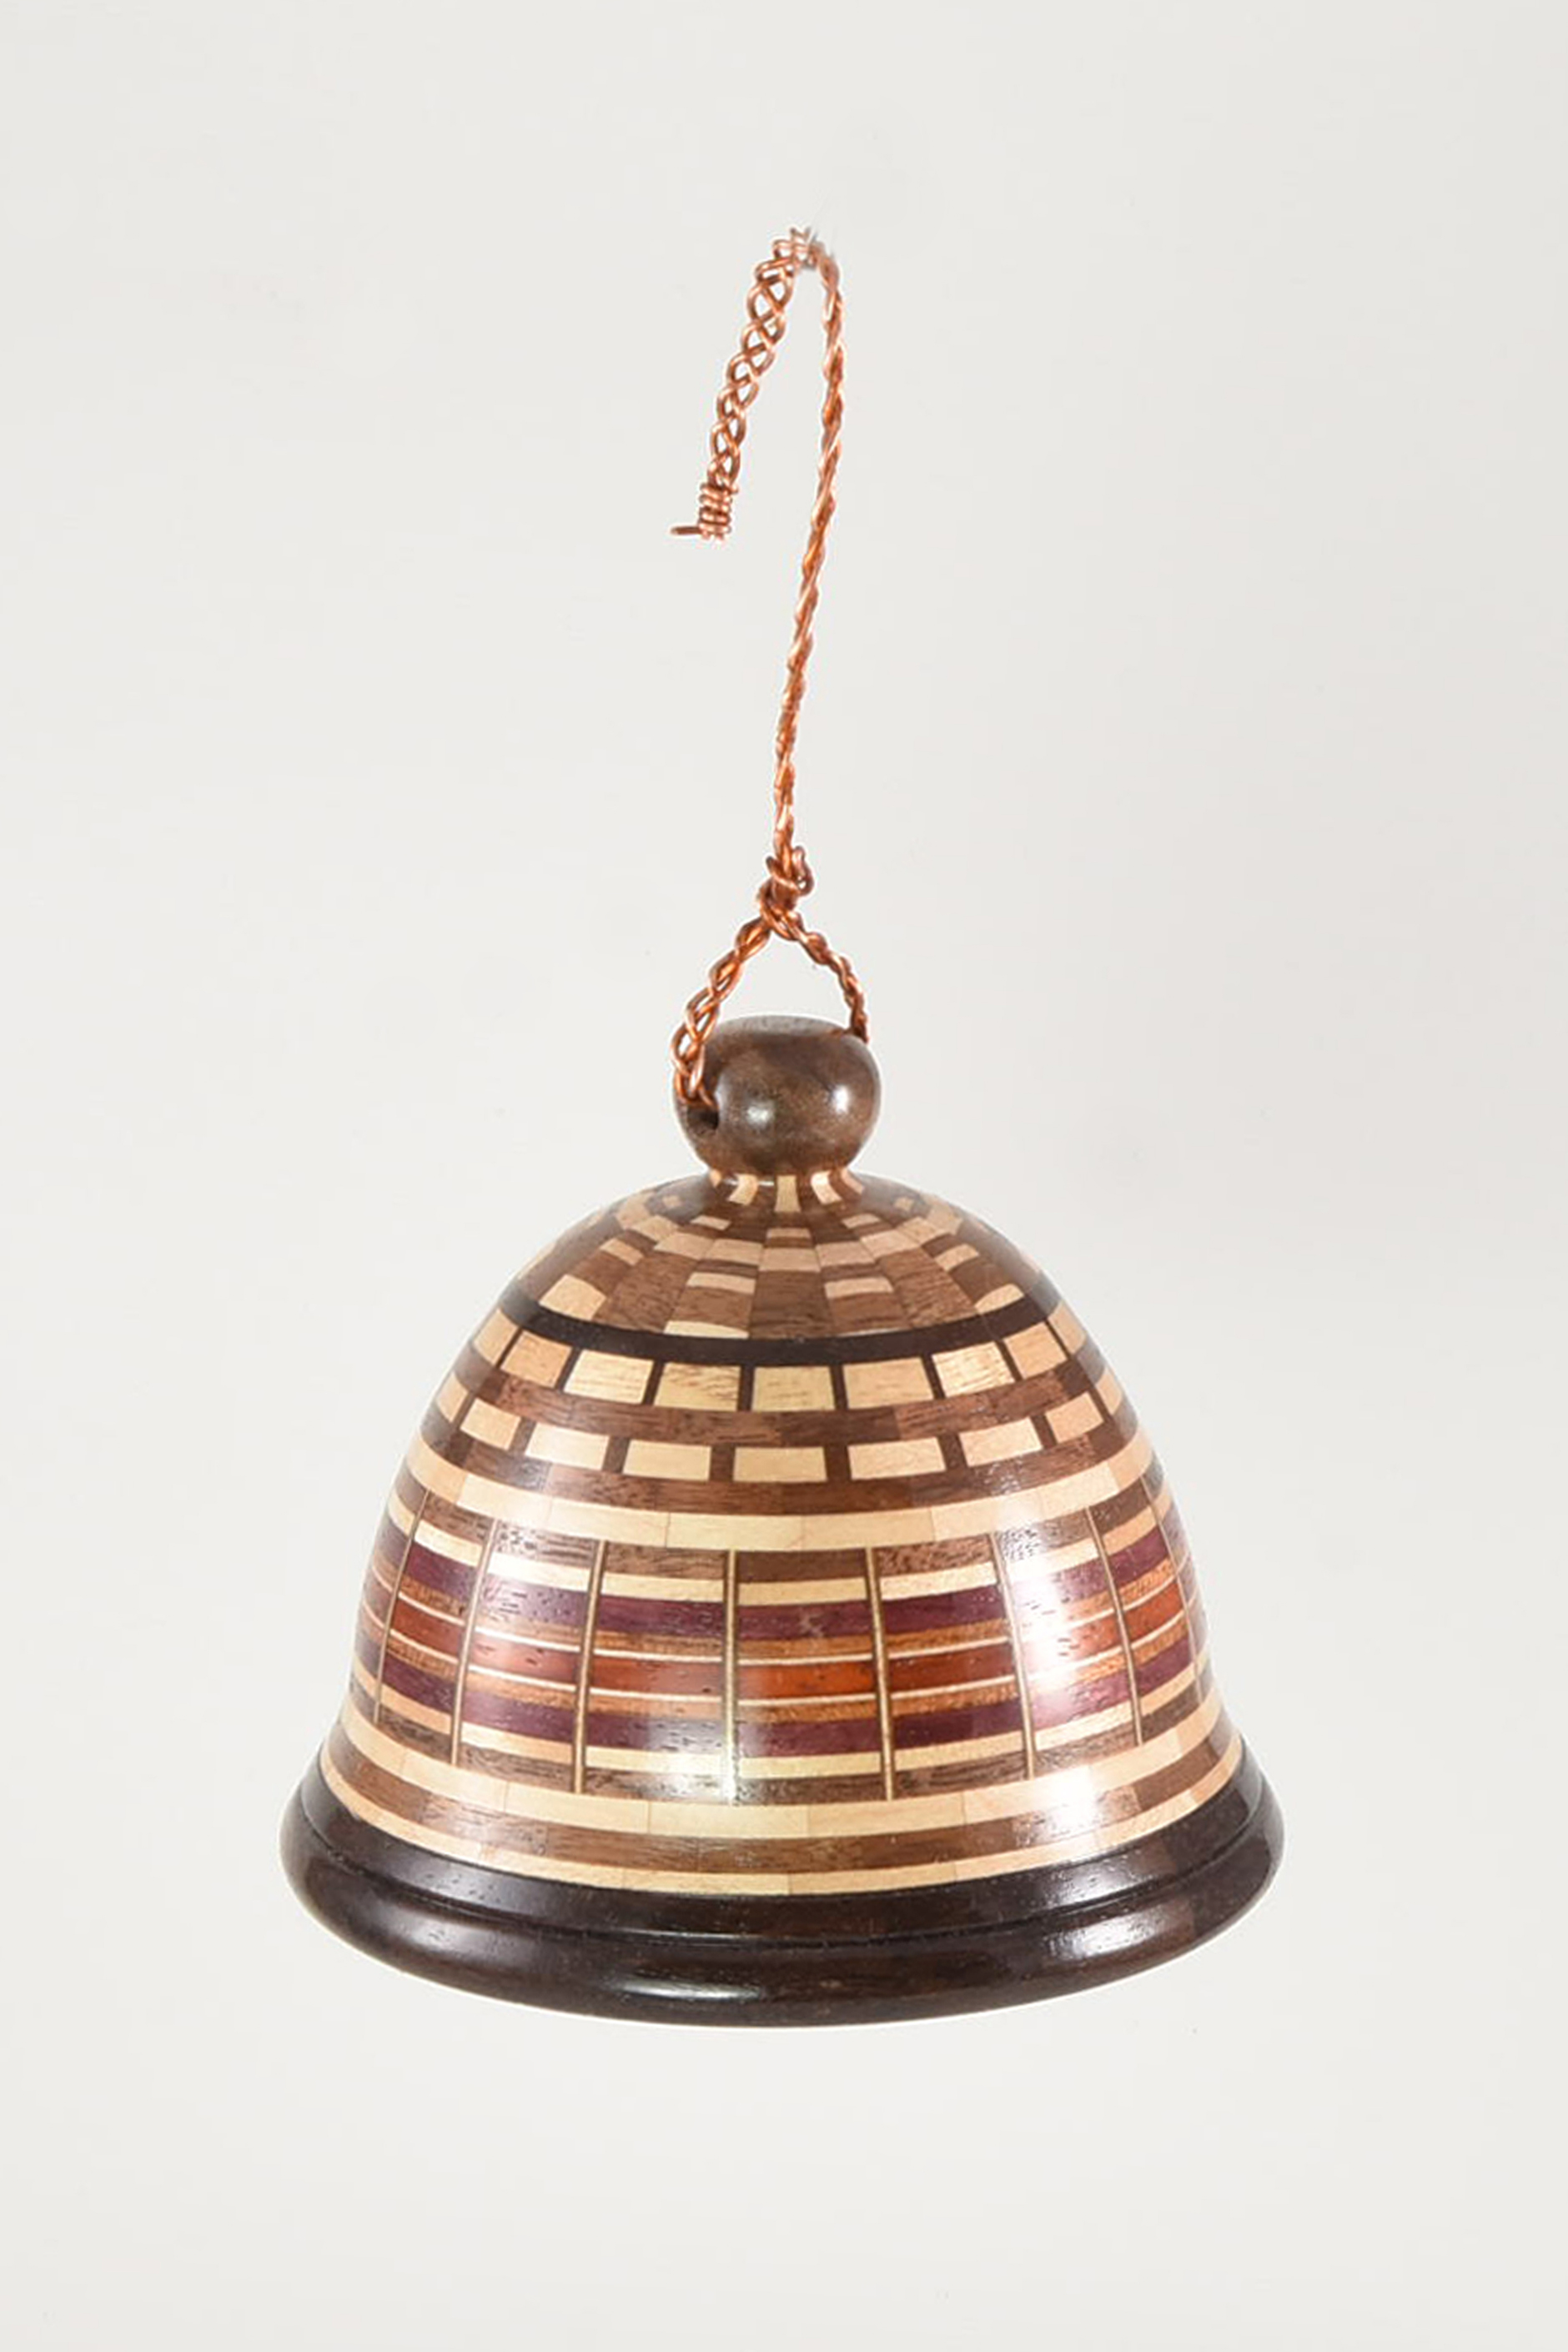 """The 4.0"""" diameter segmented wood bell is made from walnut, maple, padauk and katalox woods. There are 18 segments per layer and the bell consists of a total of 540 wood segments. -John Manura"""